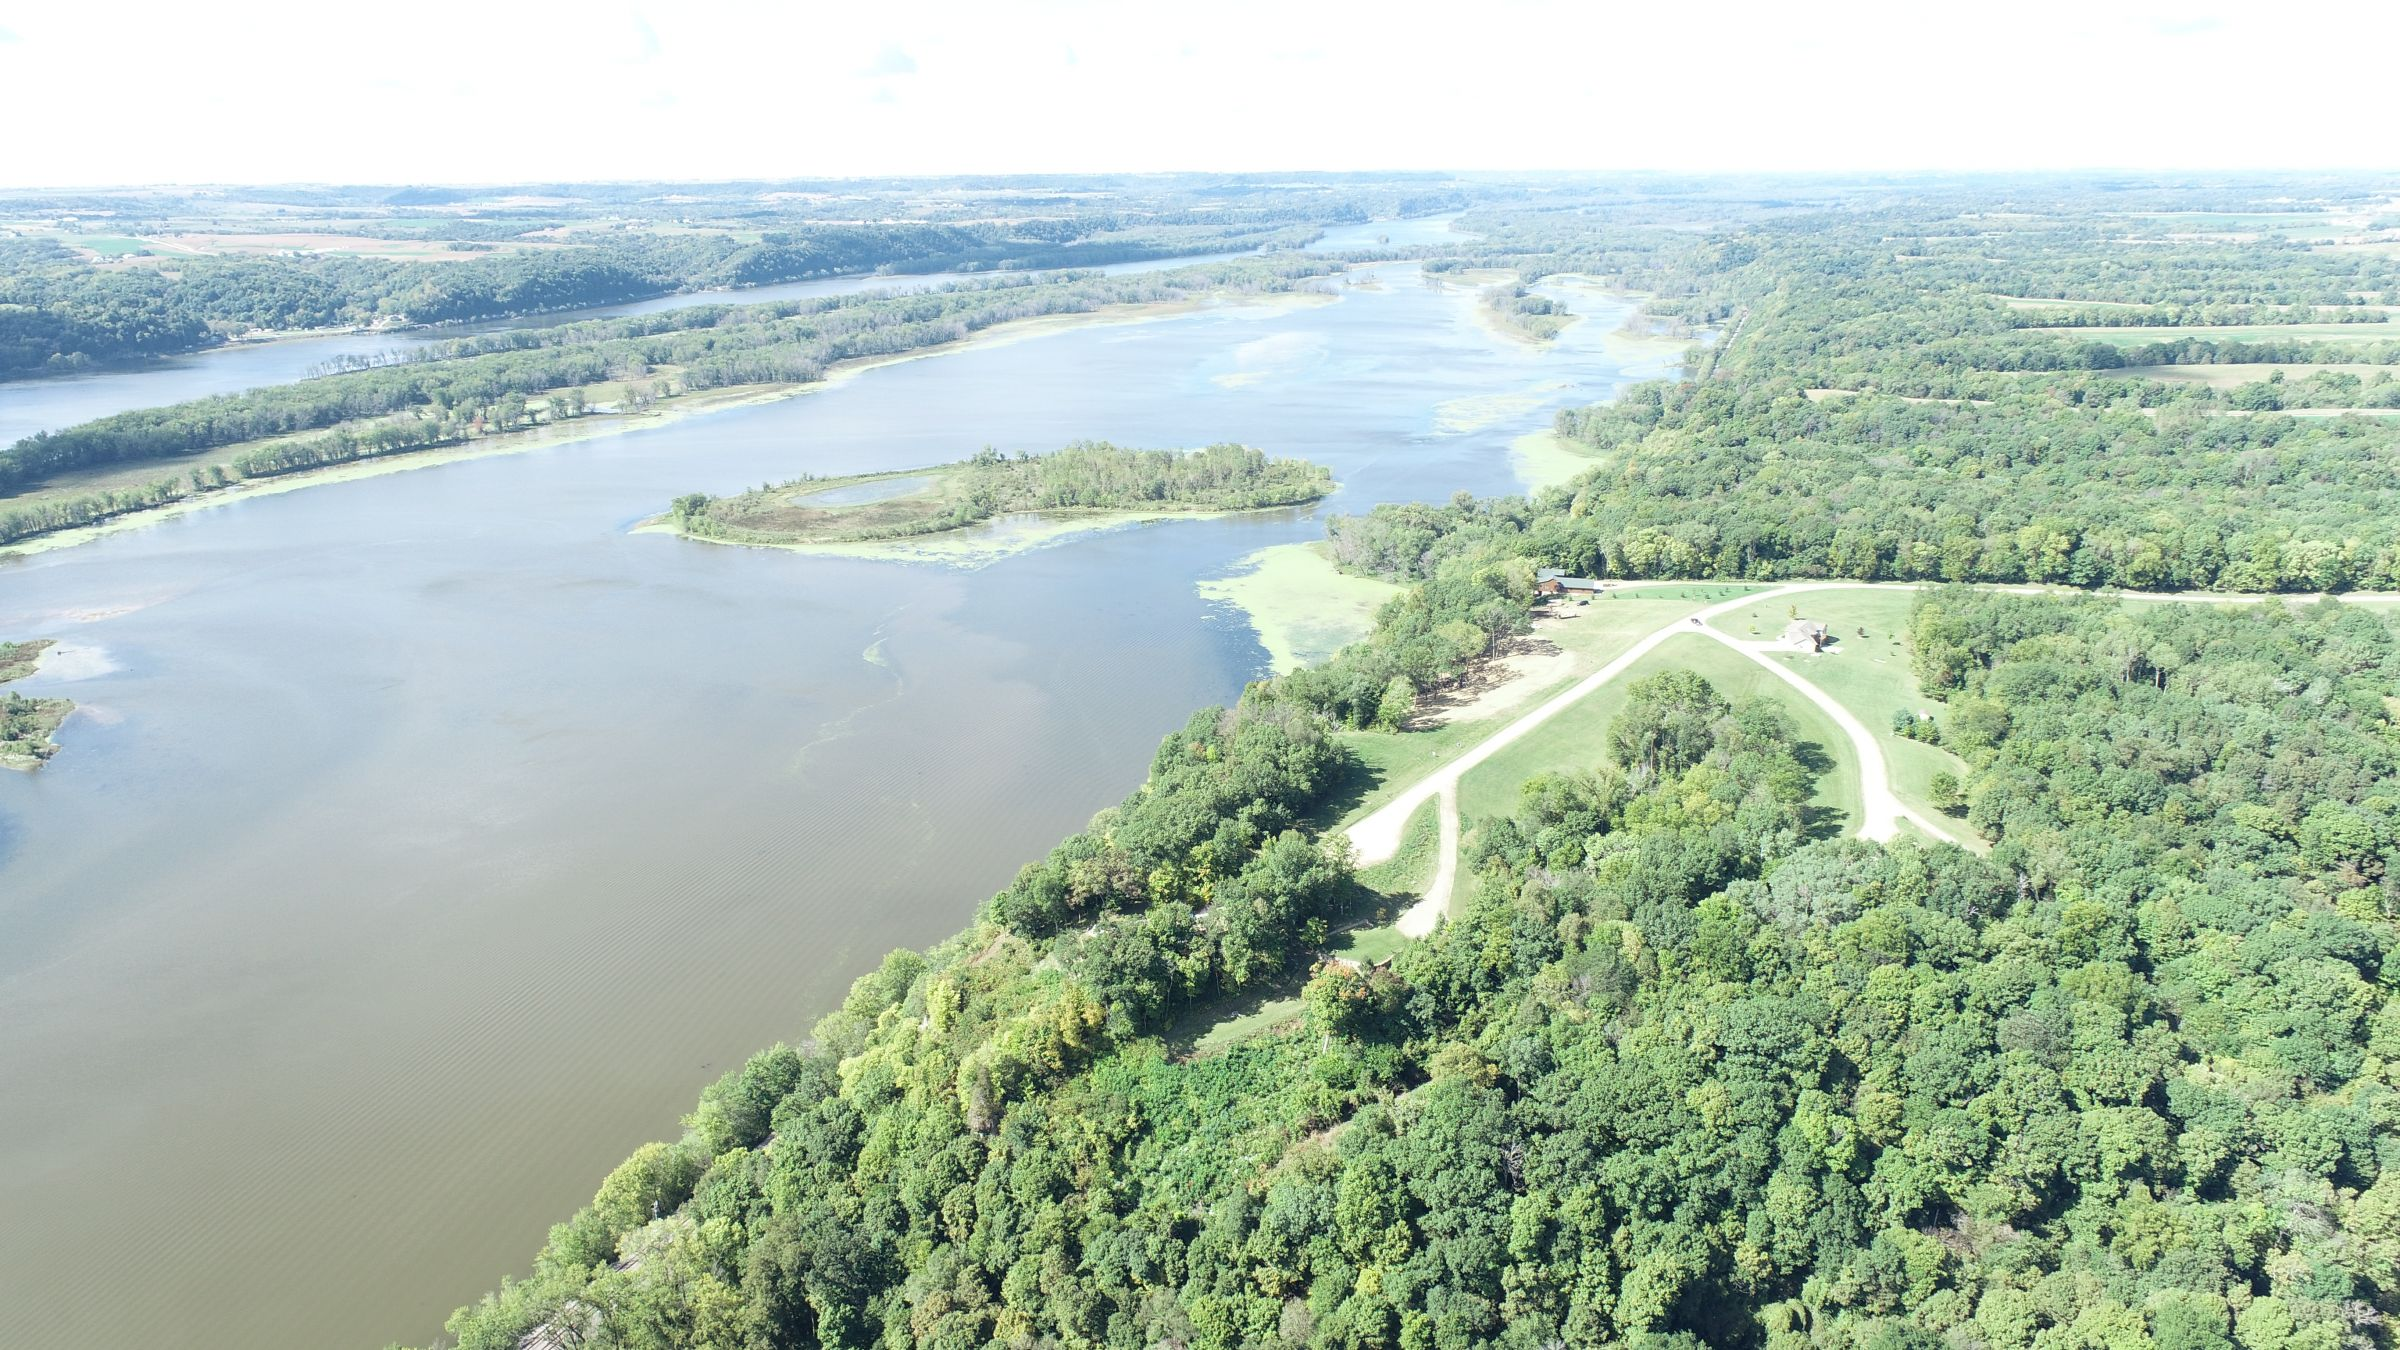 land-grant-county-wisconsin-4-acres-listing-number-15772-2-2021-09-23-015854.JPG